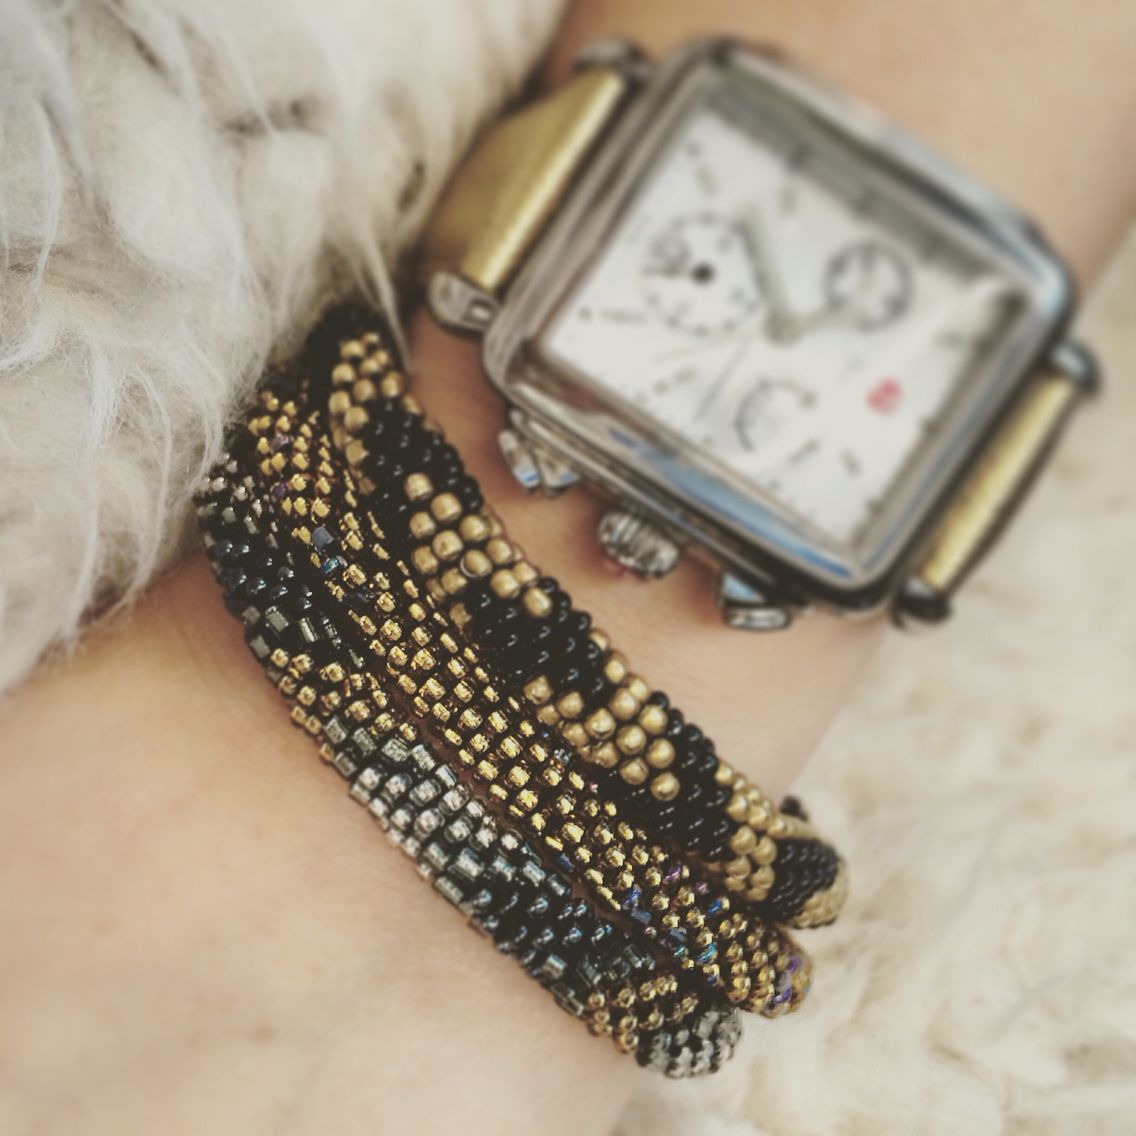 Feeling cozy on this yucky #Wednesday #LLOTD soft golds and titanium to complete this #humpday look! #OOTD #LeiLei #Nepal #handmade #bracelets #michele #armcandy #savinglives #fairtrade #goodcause #helpthecause #wearthecause #furvest #michelewatch